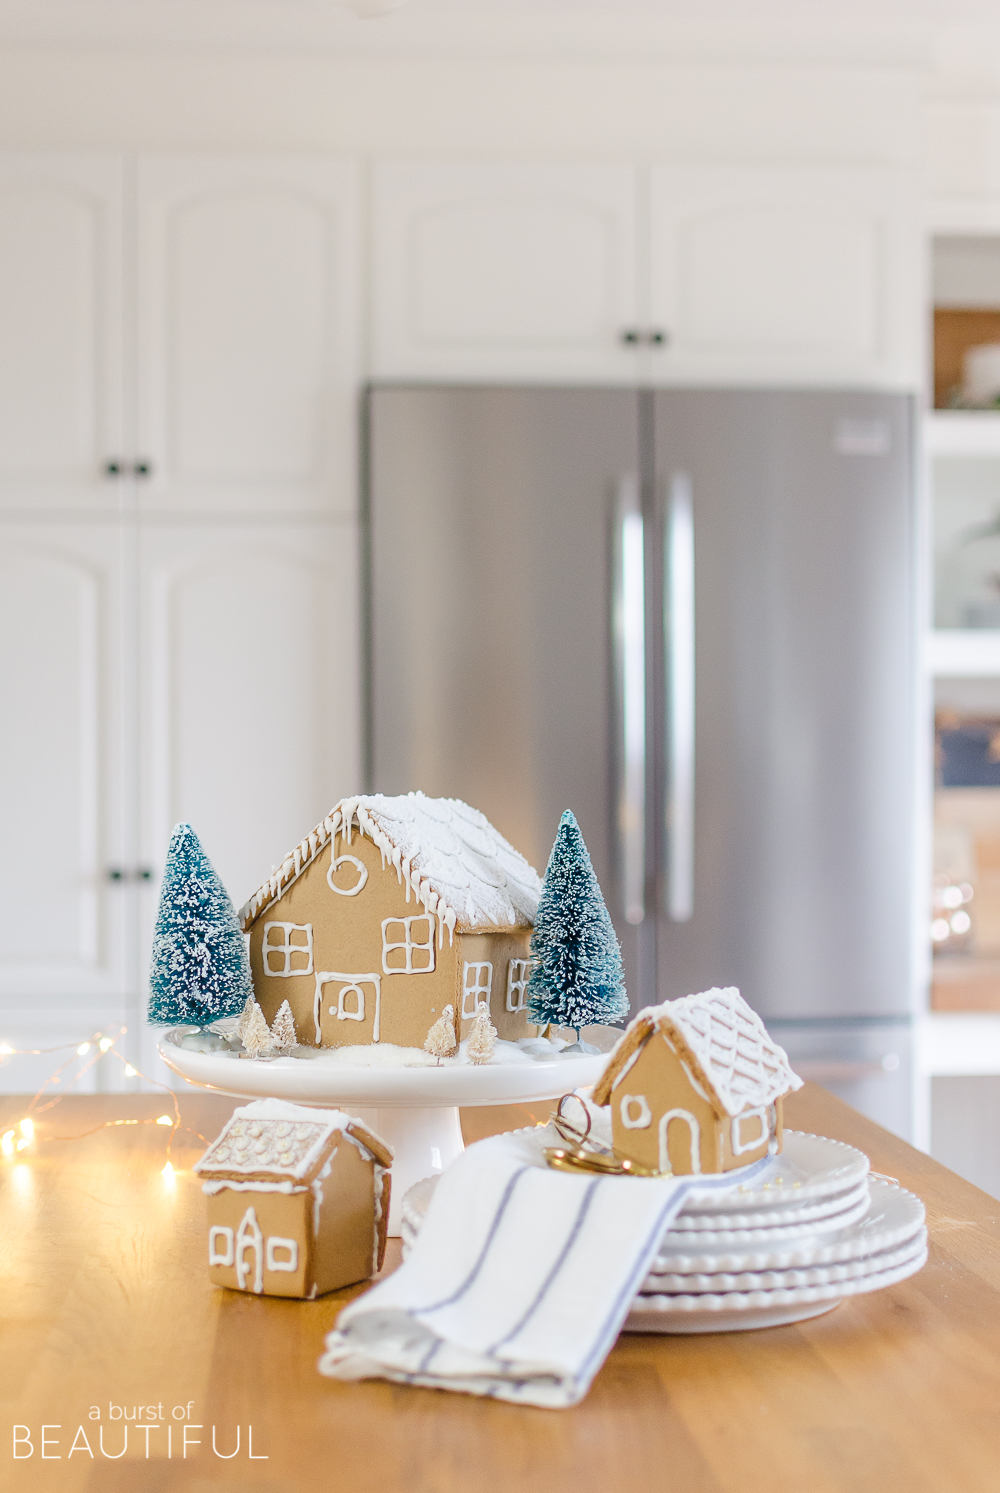 Simple Decorating Ideas for a Festive Christmas Kitchen